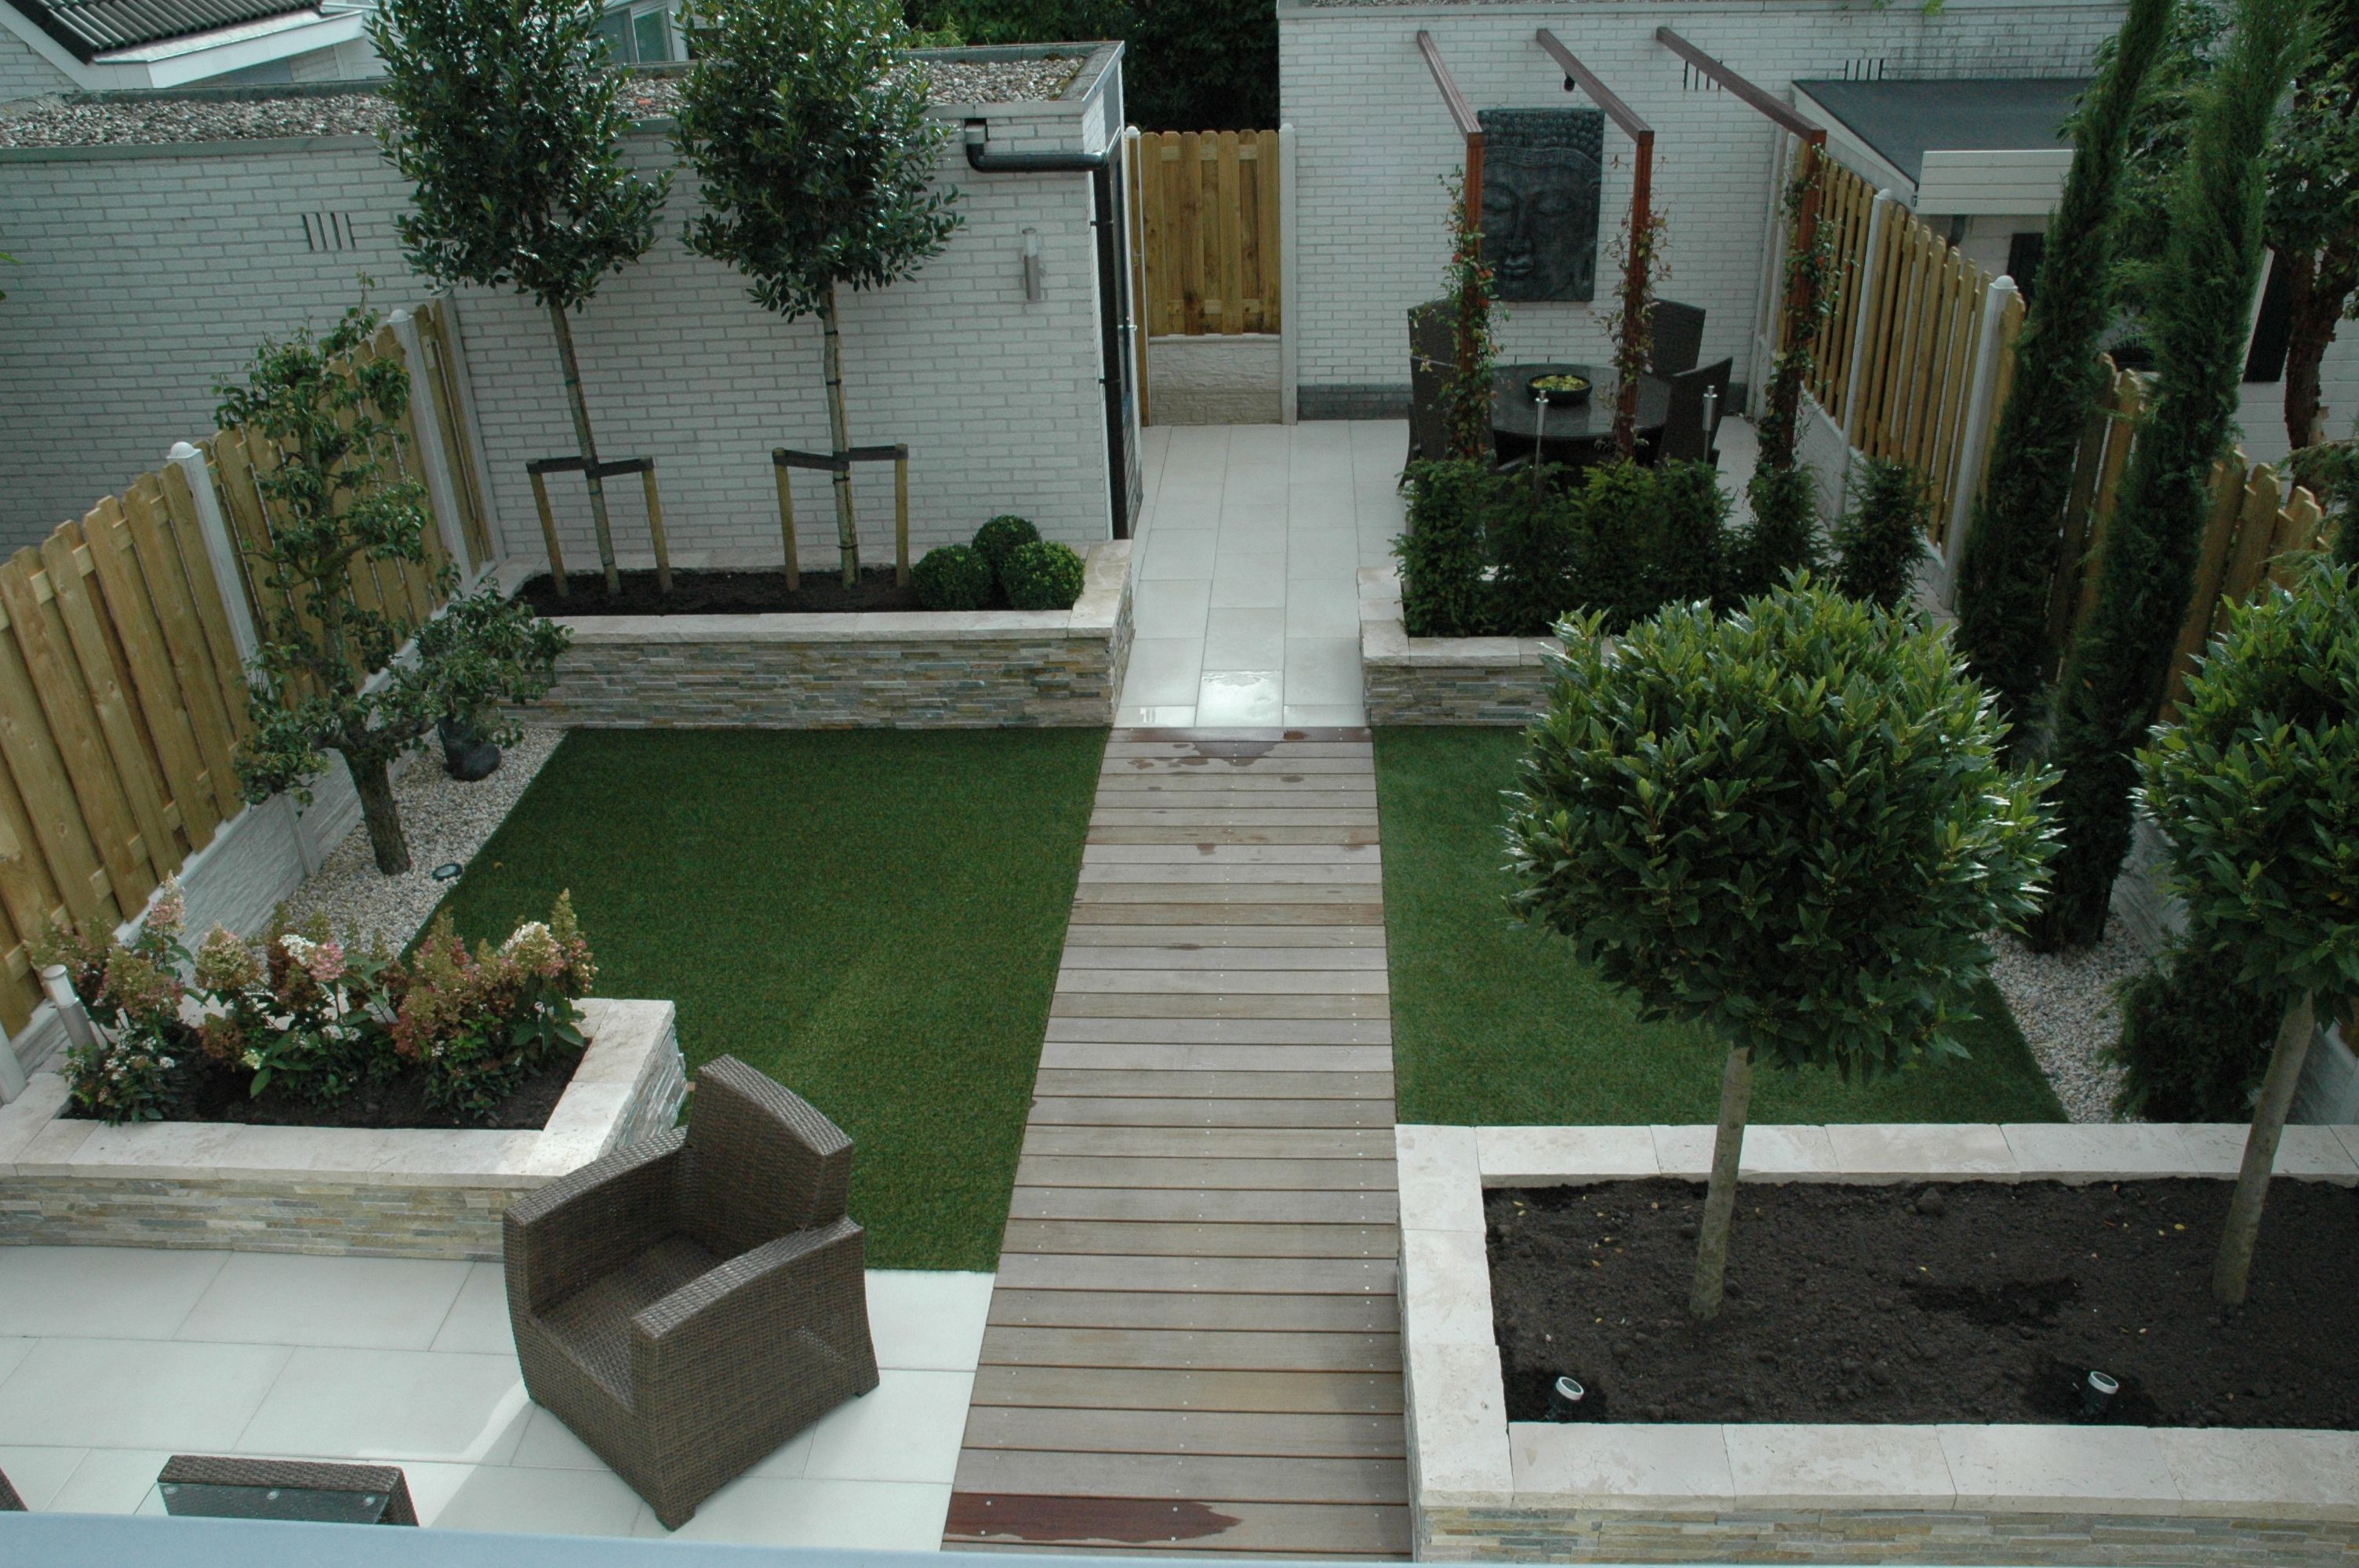 Artificial Grass Garden Designs gardens and roof terraces with artificial grass pattern Get Effortless Lush Neatly Cropped Grass All Year Round With Artificial Grass Visit Our Garden Ideas